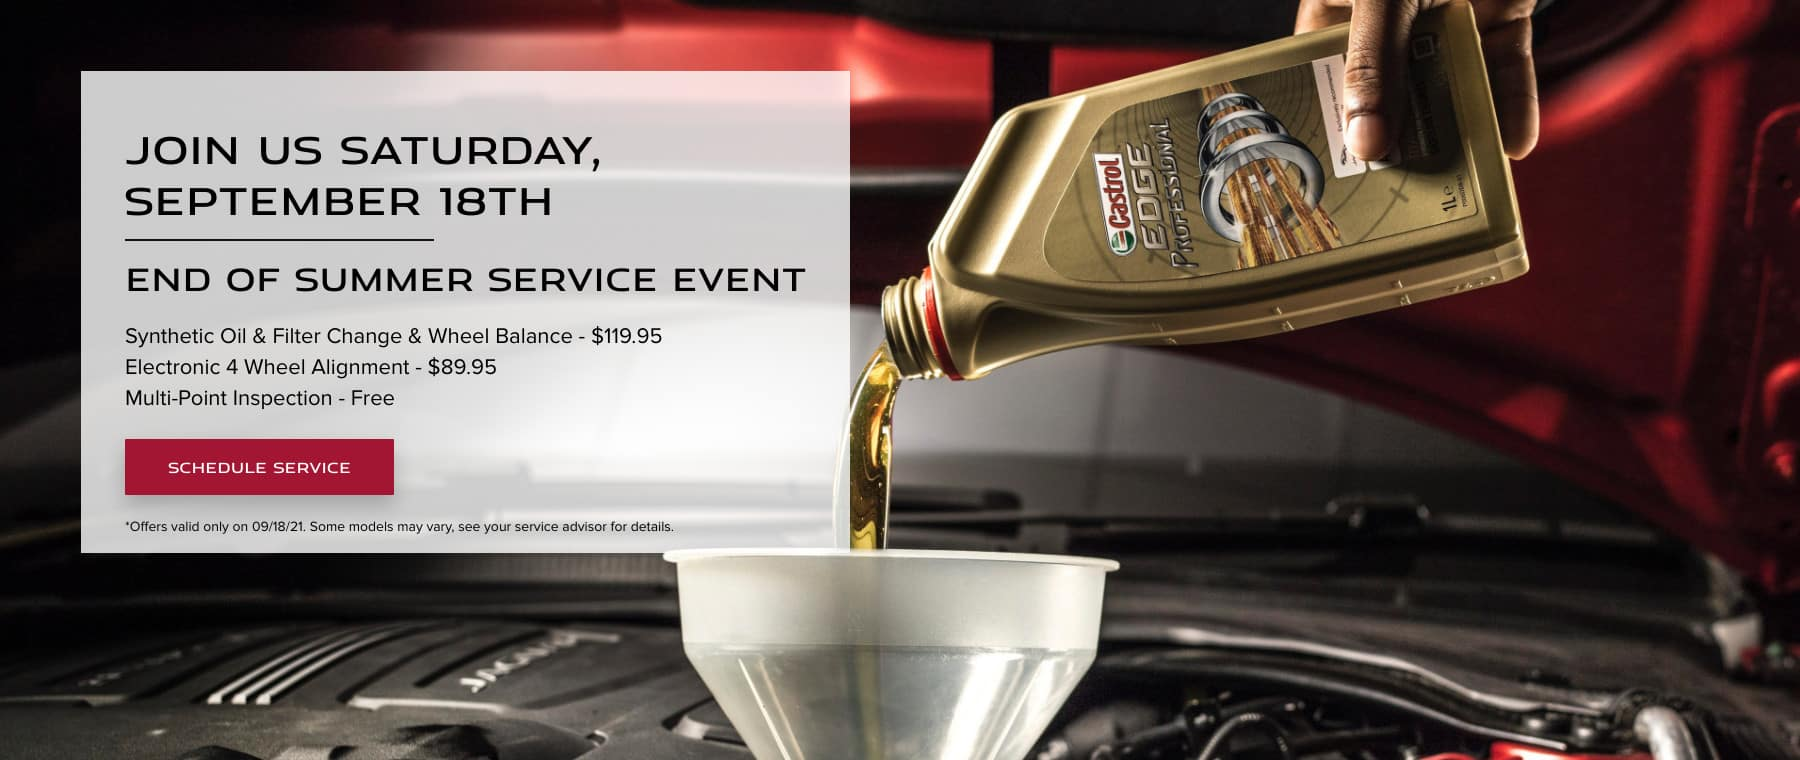 End of Summer Service Event